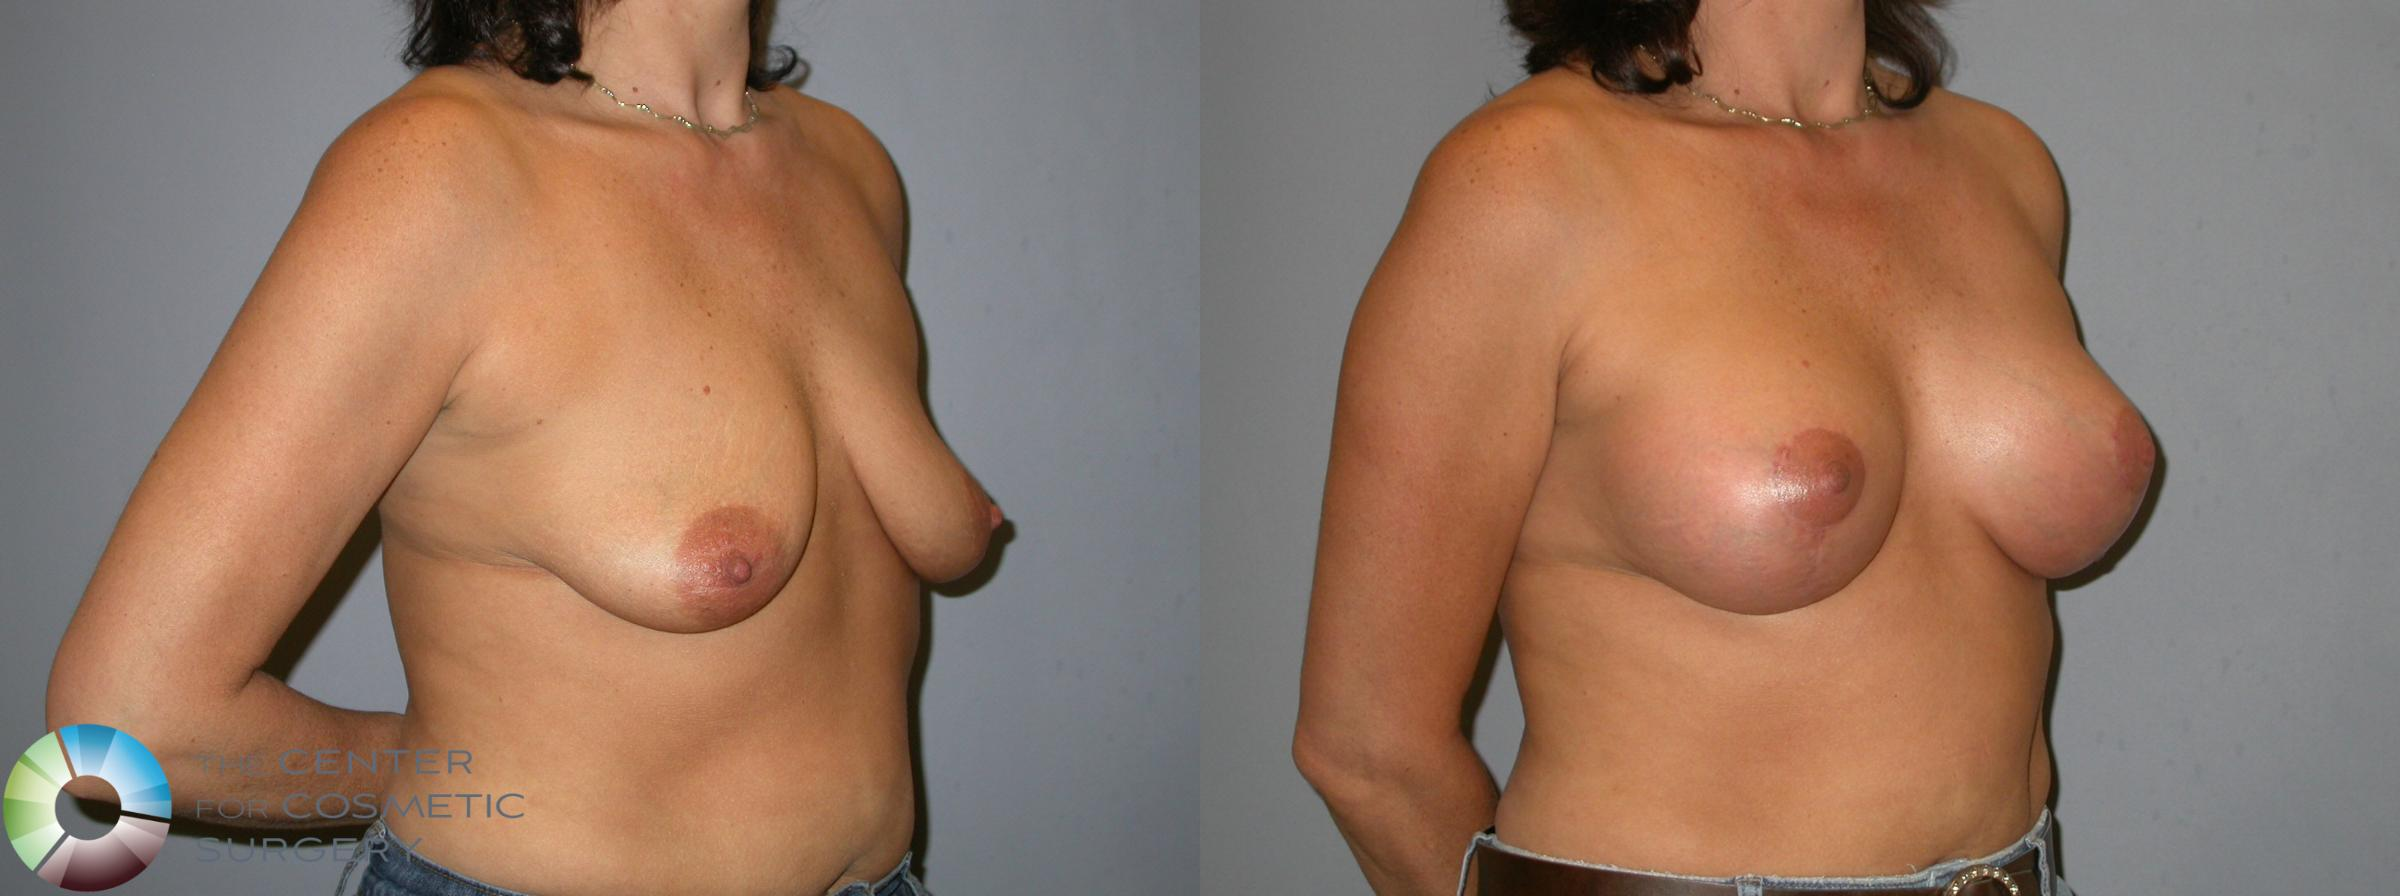 Breast Lift Case 345 Before & After View #2 | Golden, CO | The Center for Cosmetic Surgery